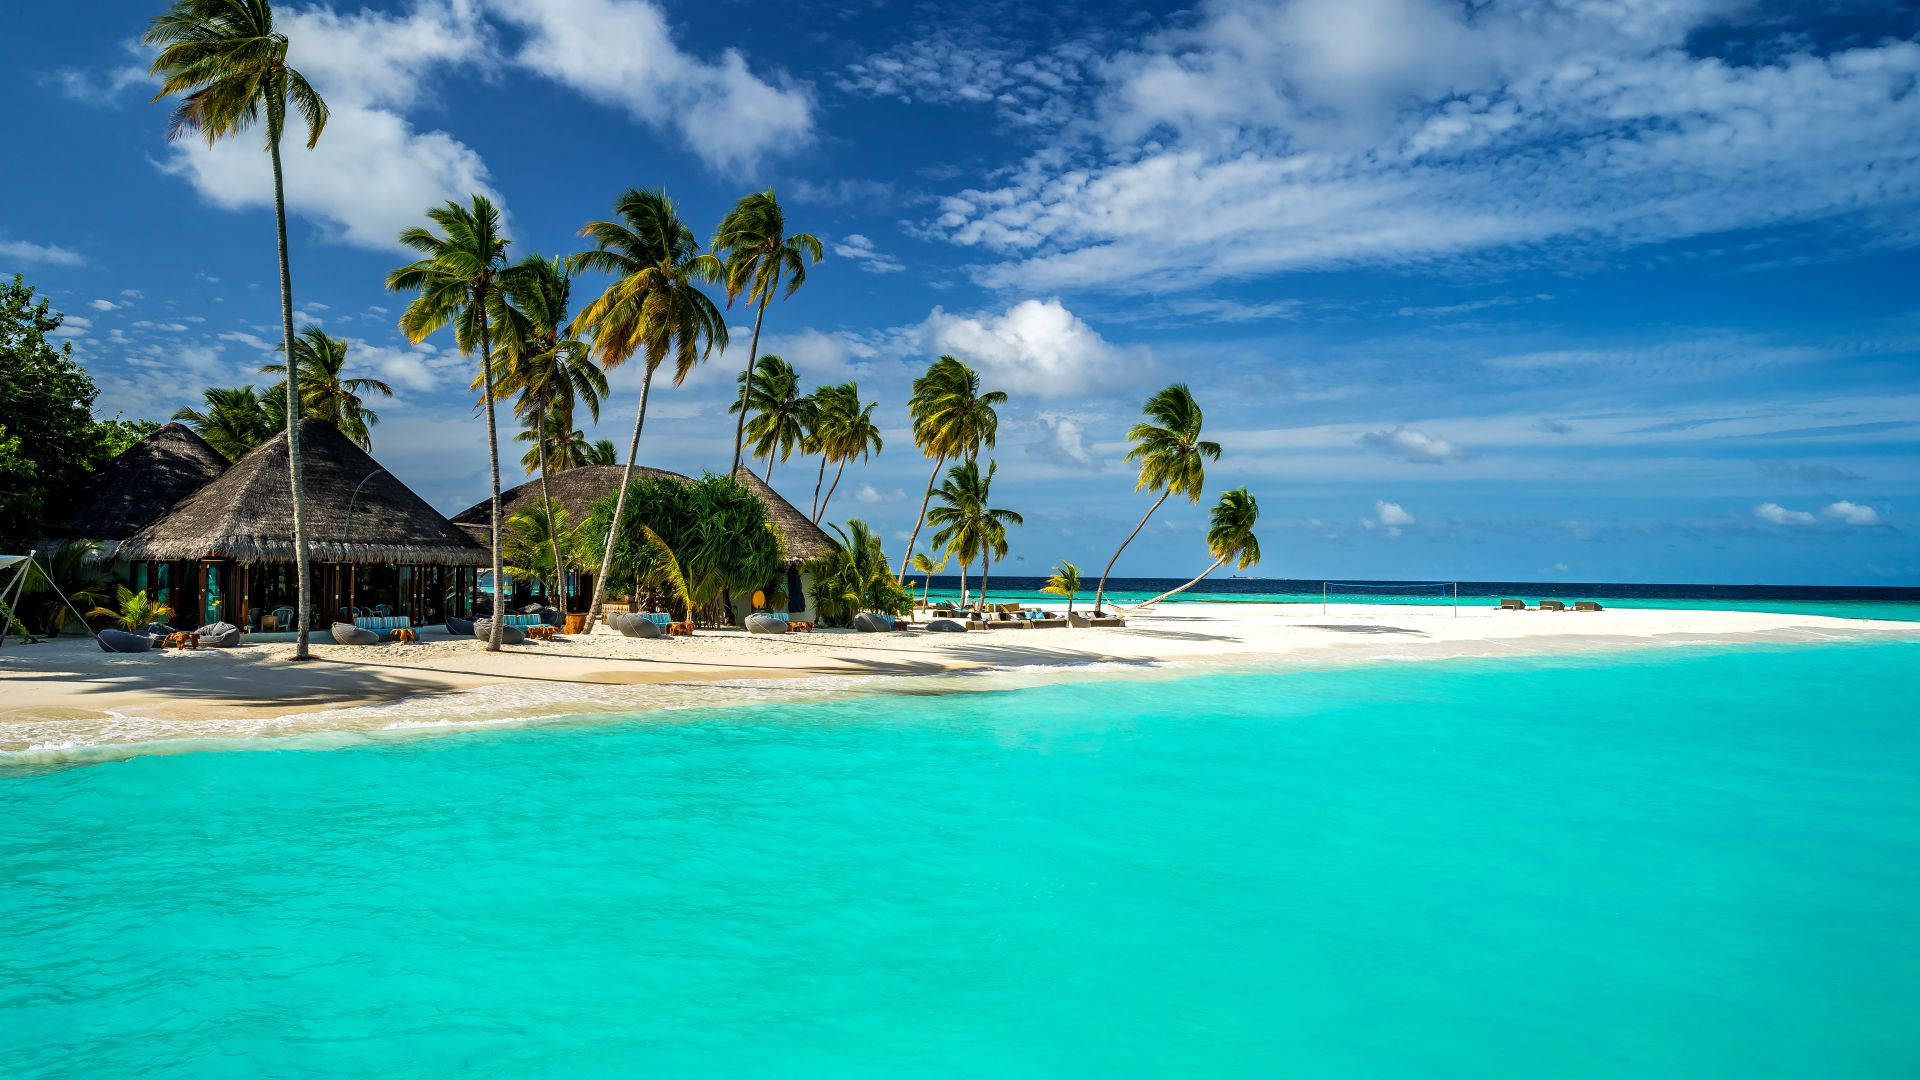 Maldives, 5k, 4k wallpaper, 8k, Indian Ocean, Best Beaches in the World palms, shore, sky (horizontal)